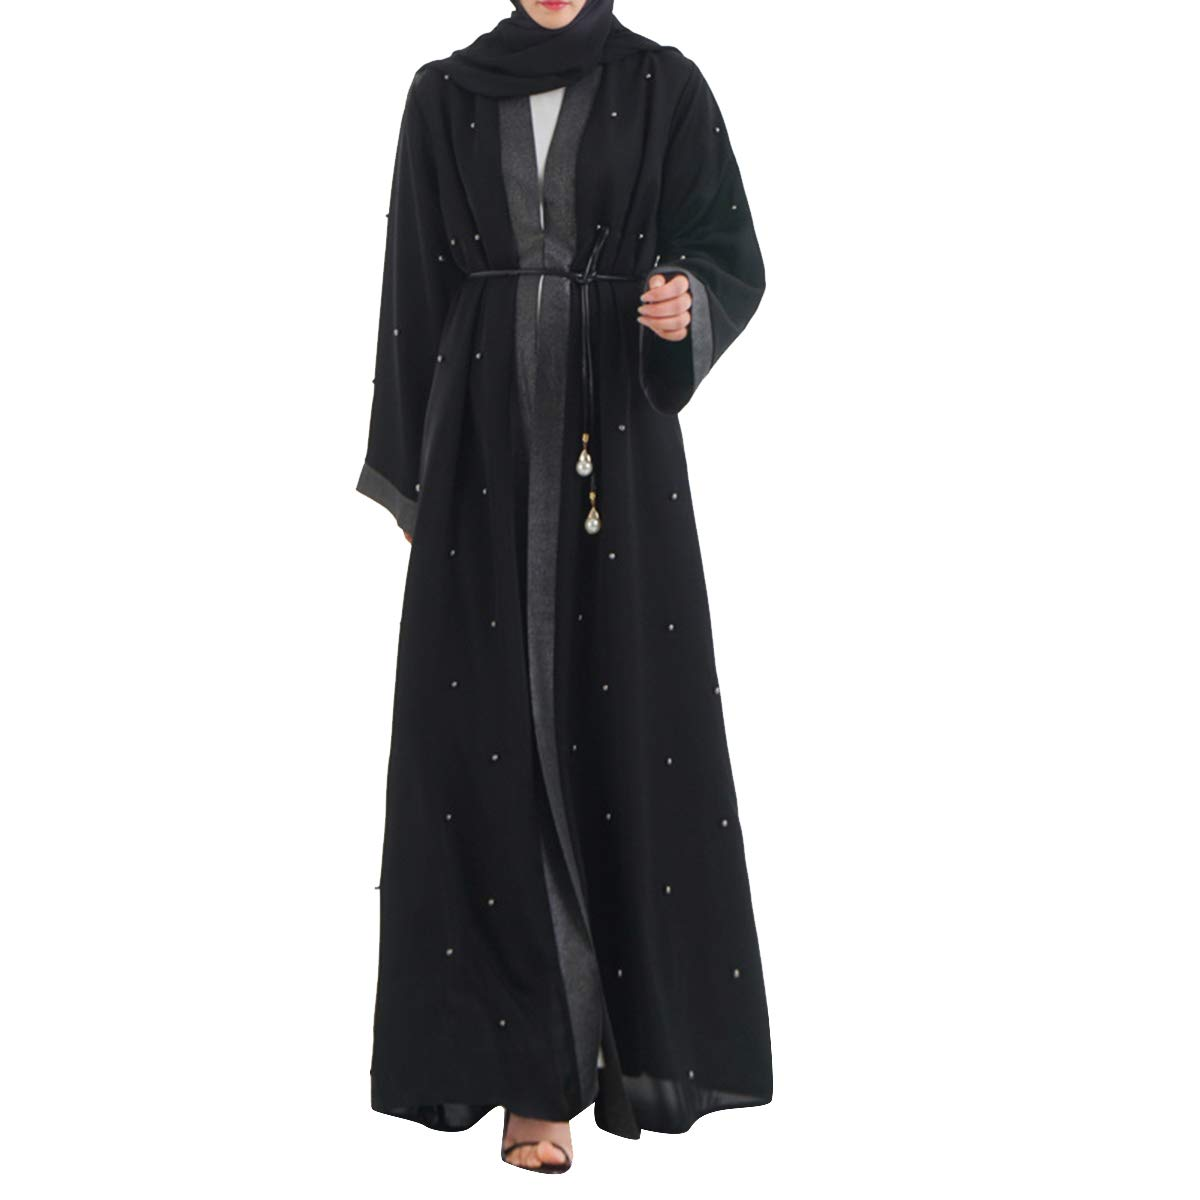 Black Alsjigytrmx Rivet Patchwork Cardigan Long Sleeve Floor Length Lace Up Ethnic Women's Robes